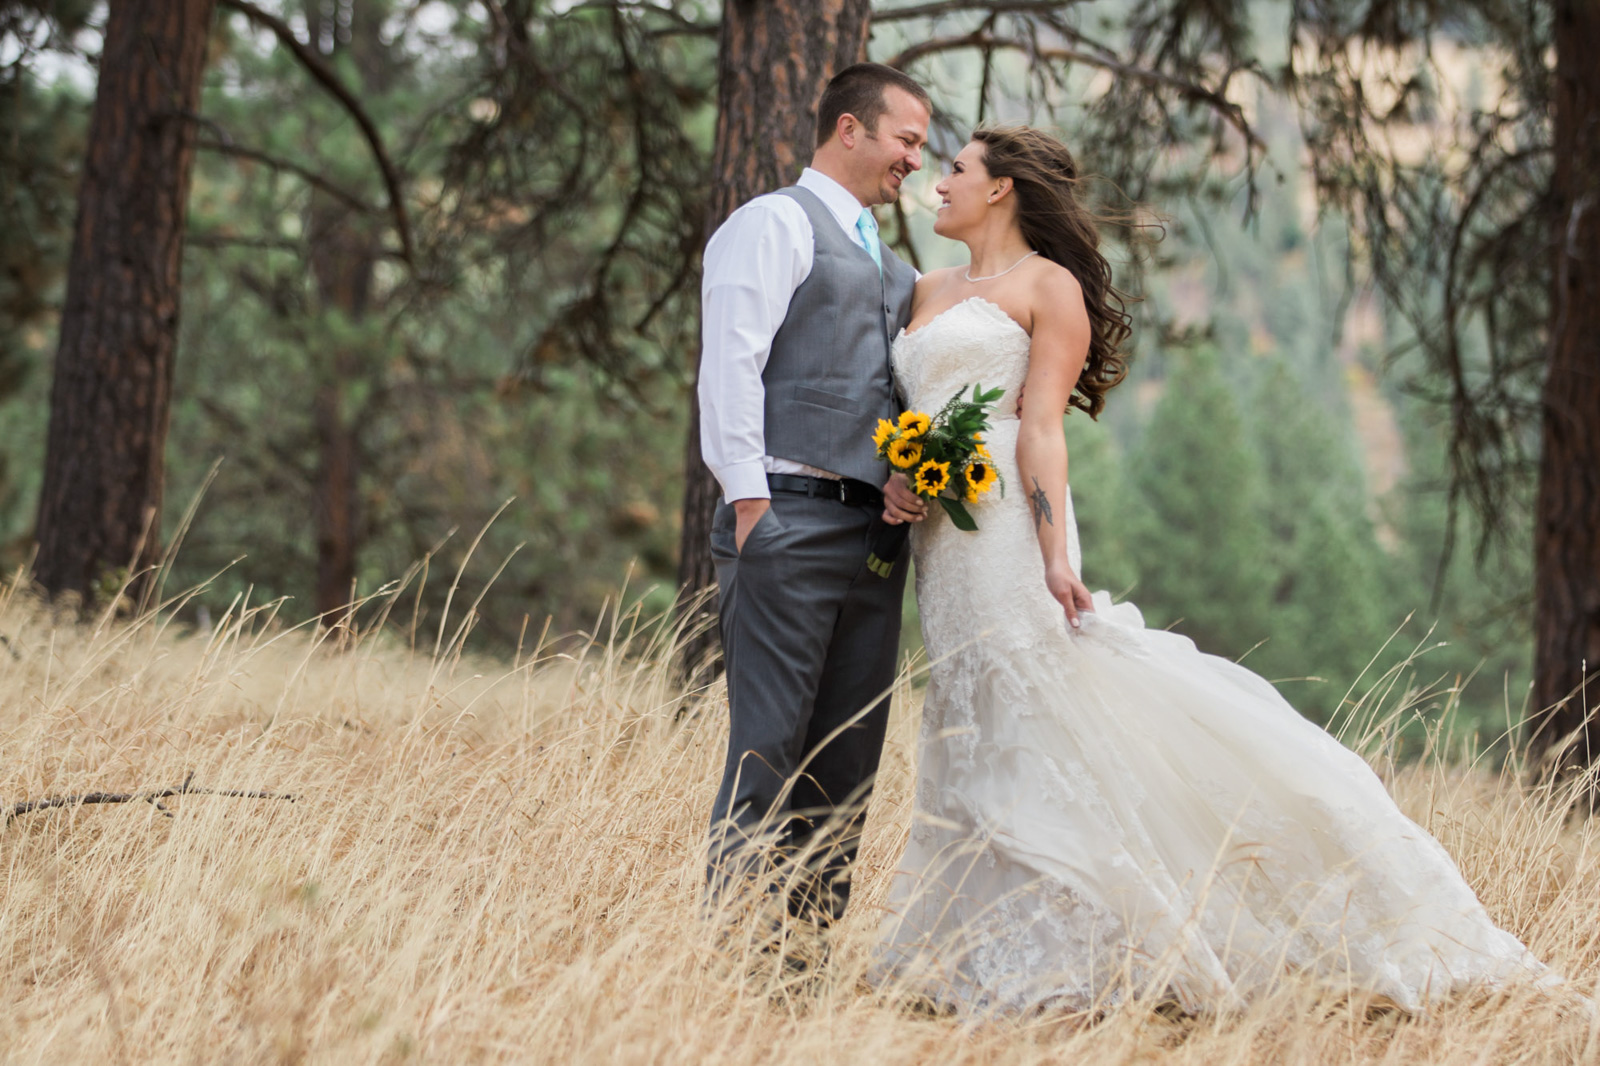 Weddings and Engagements -16 - Cle Elum The Cattle Barn Wedding Photography